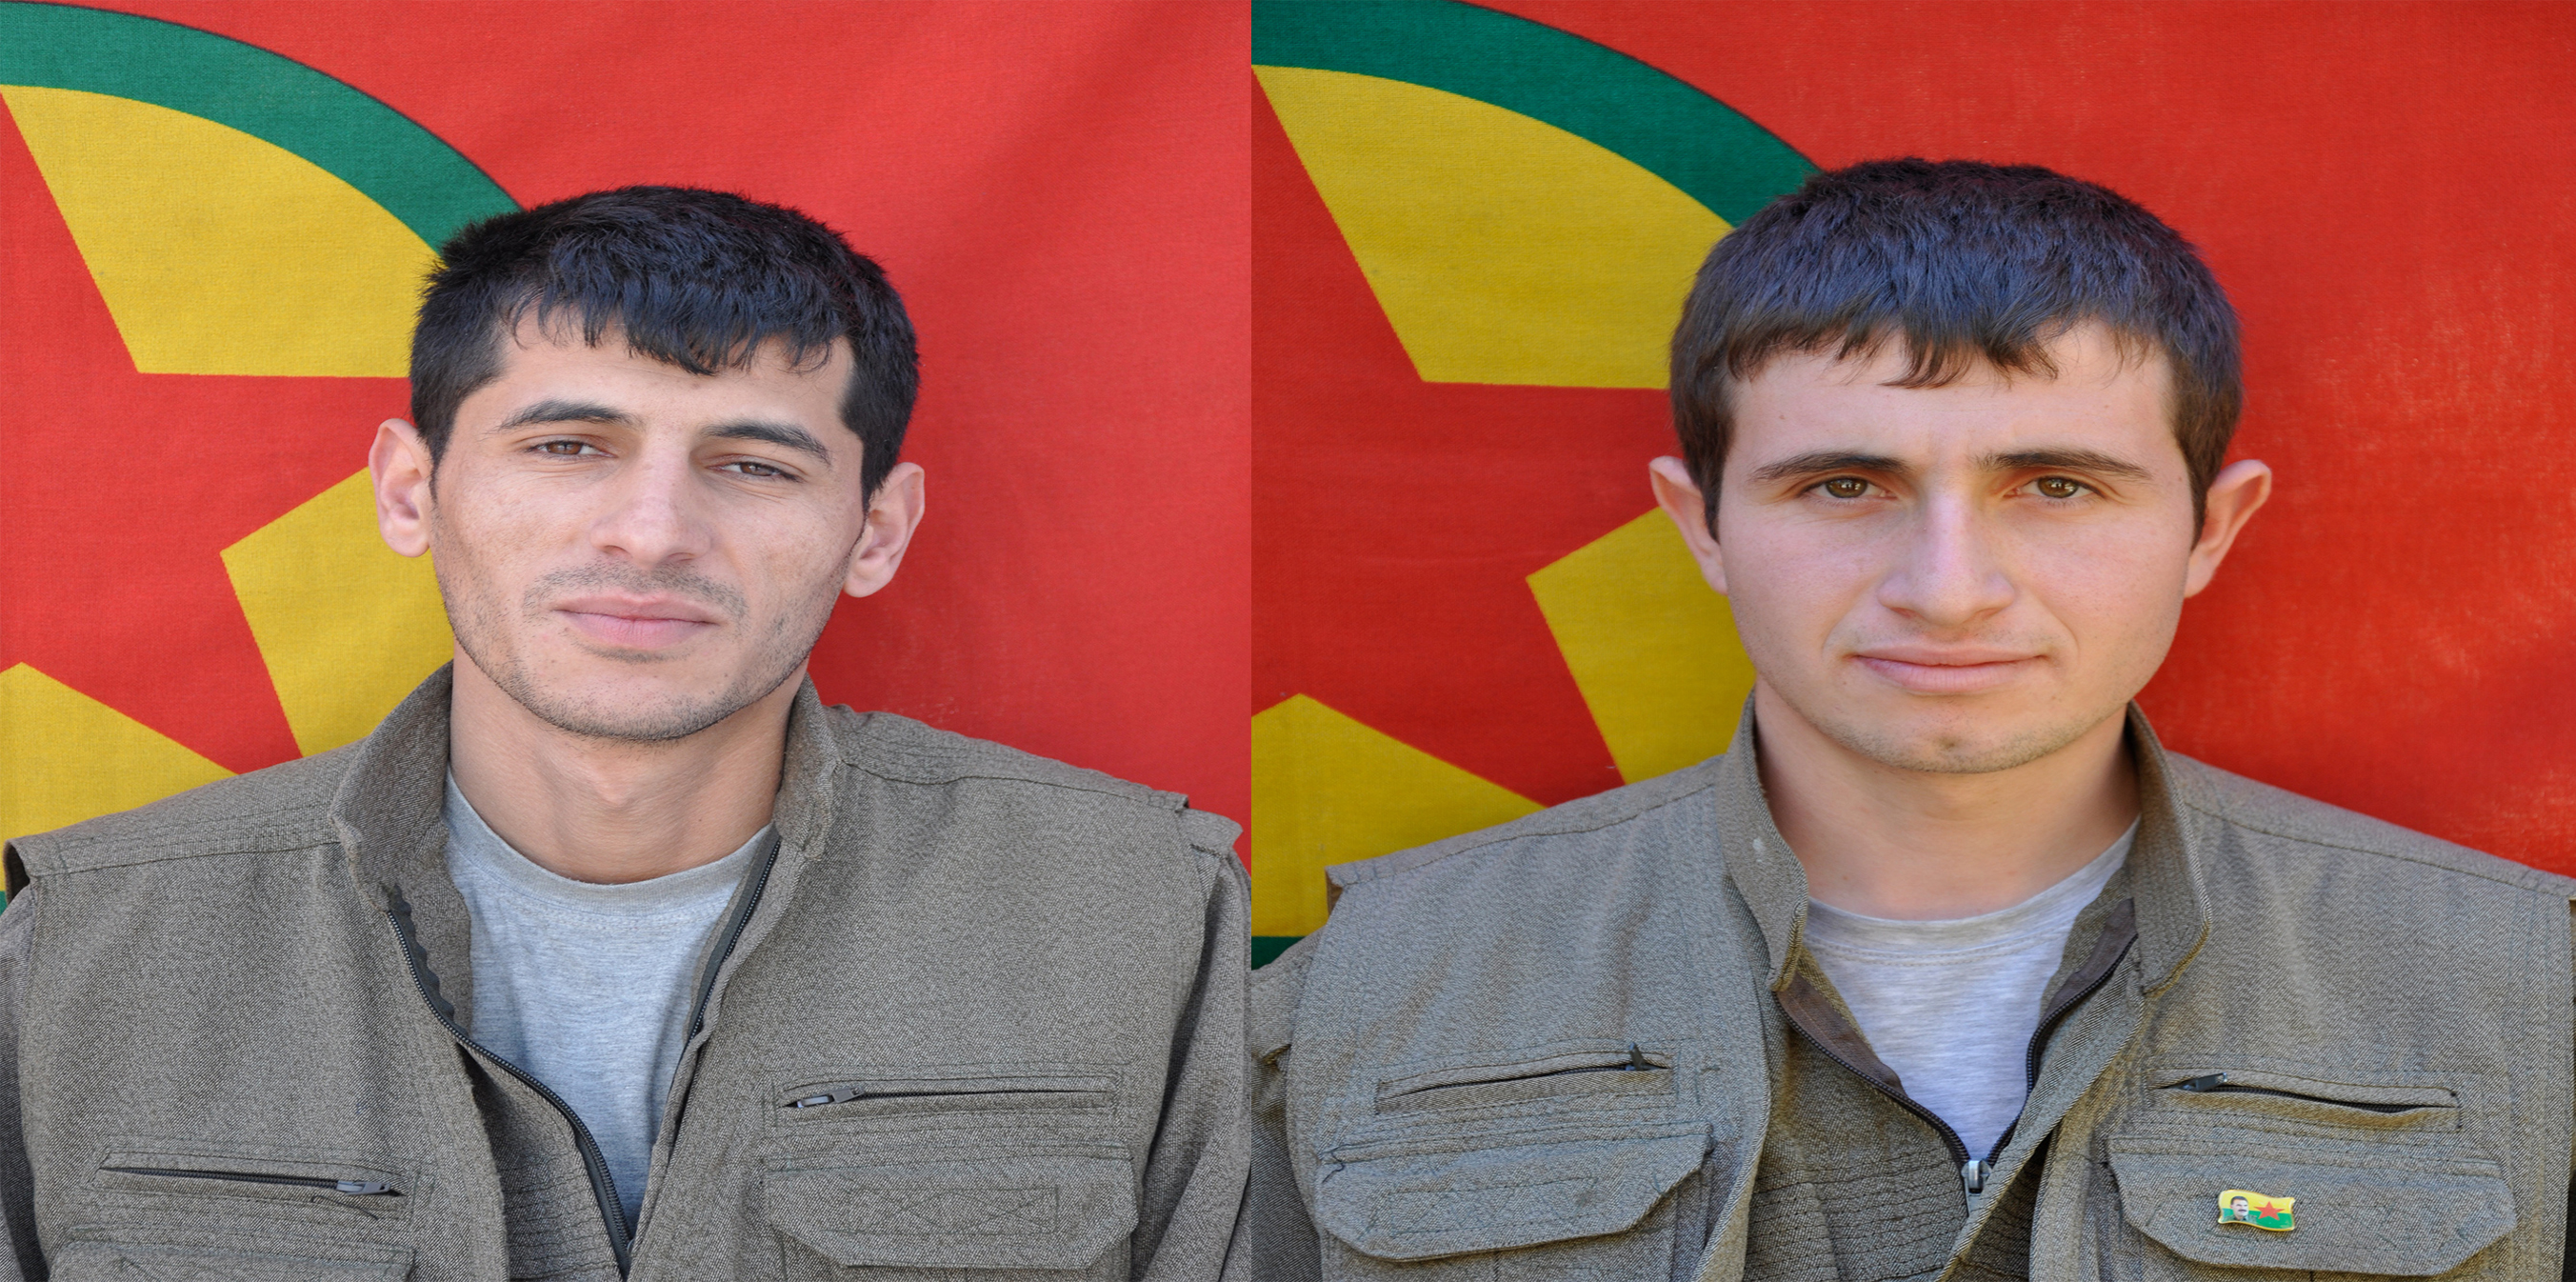 HPG reveals a record of fighters martyred in Amed